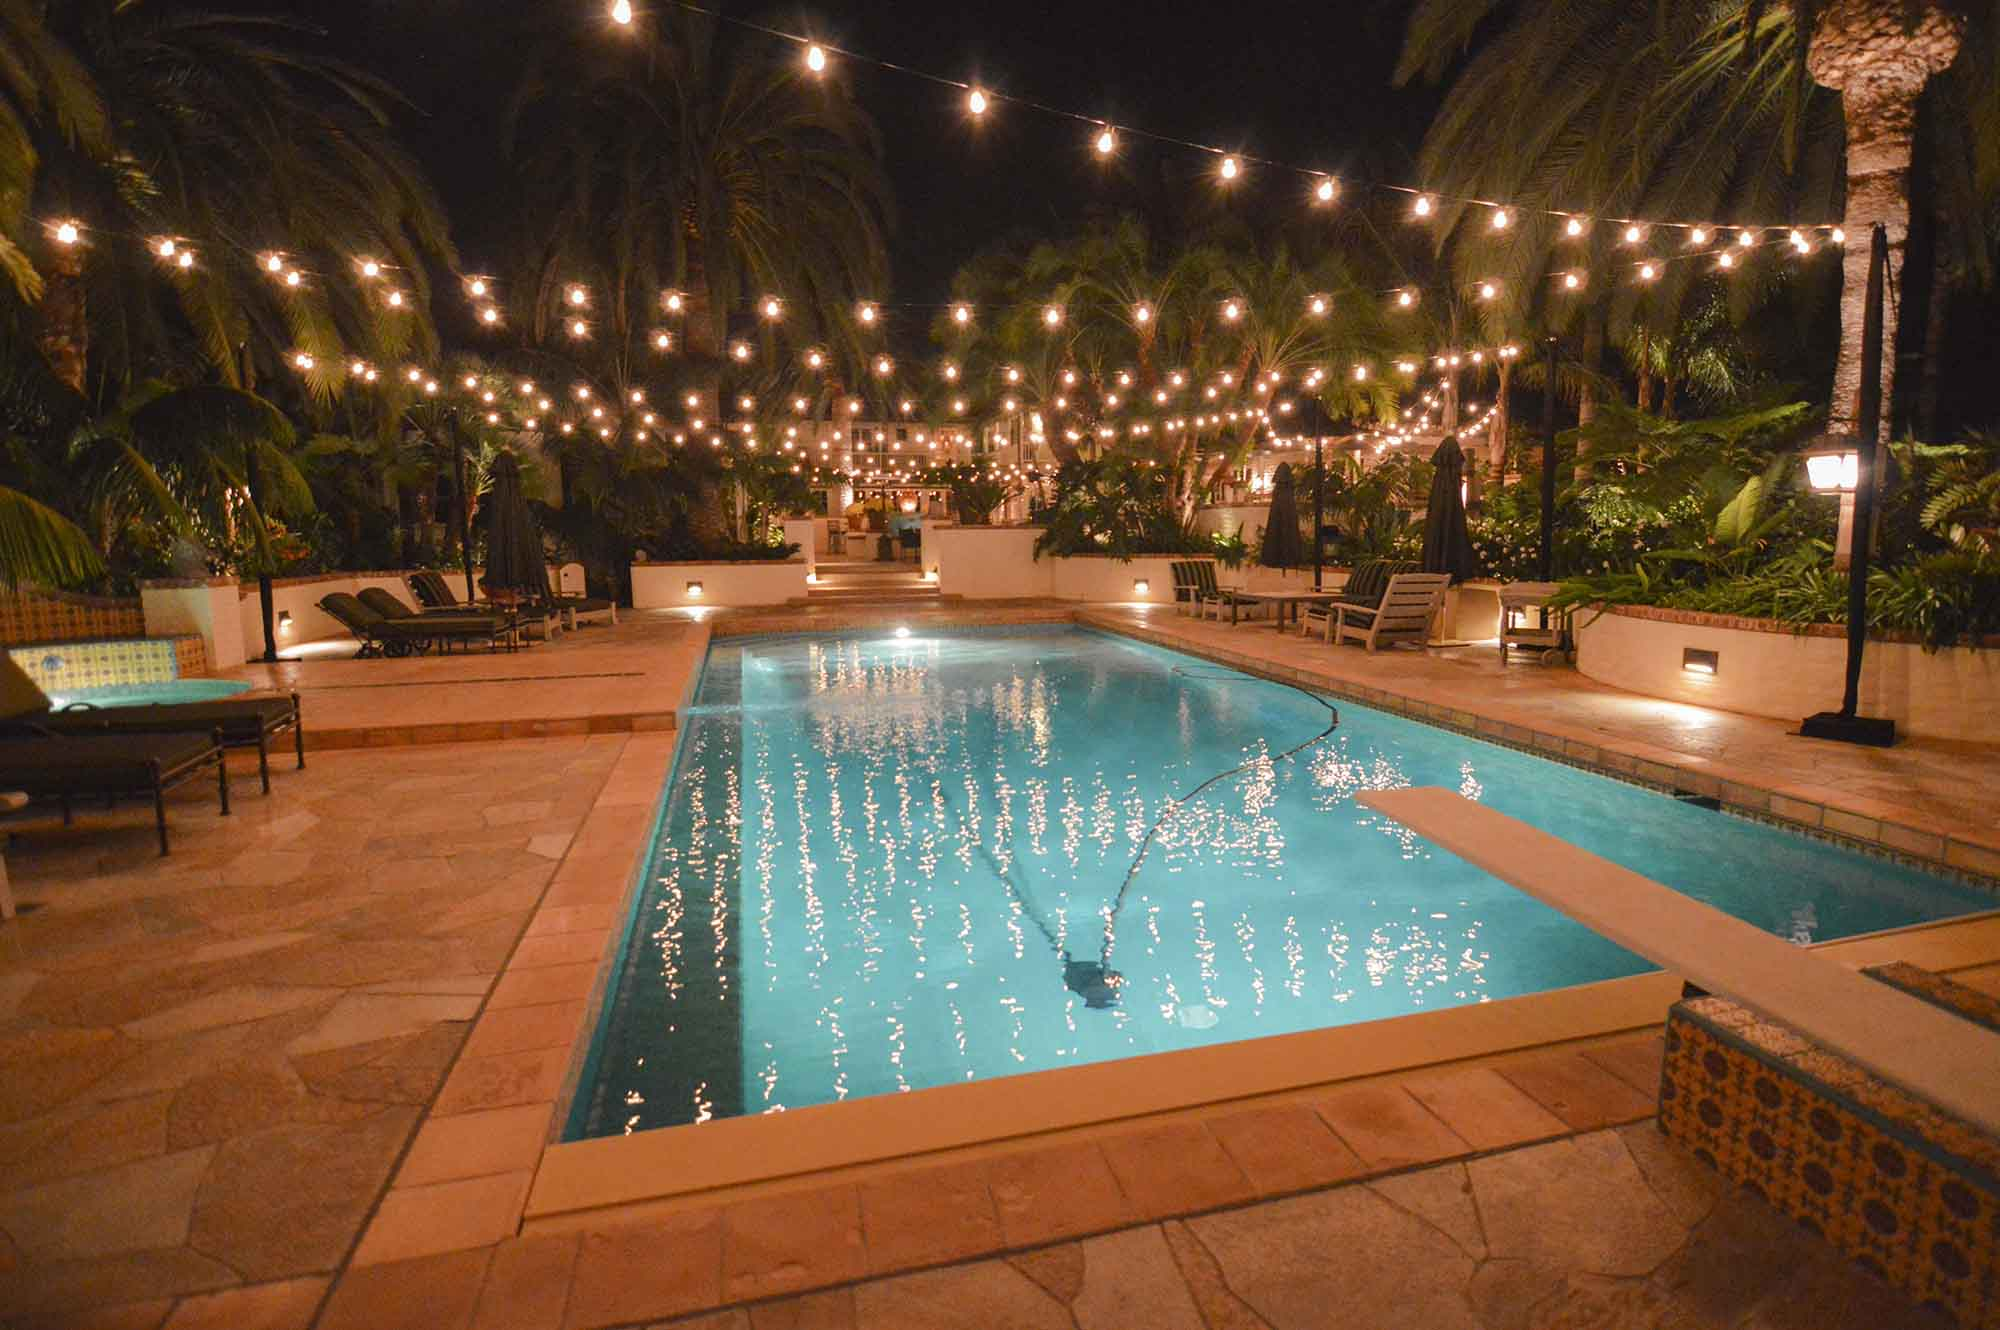 Market-Lights_Accross-Pool